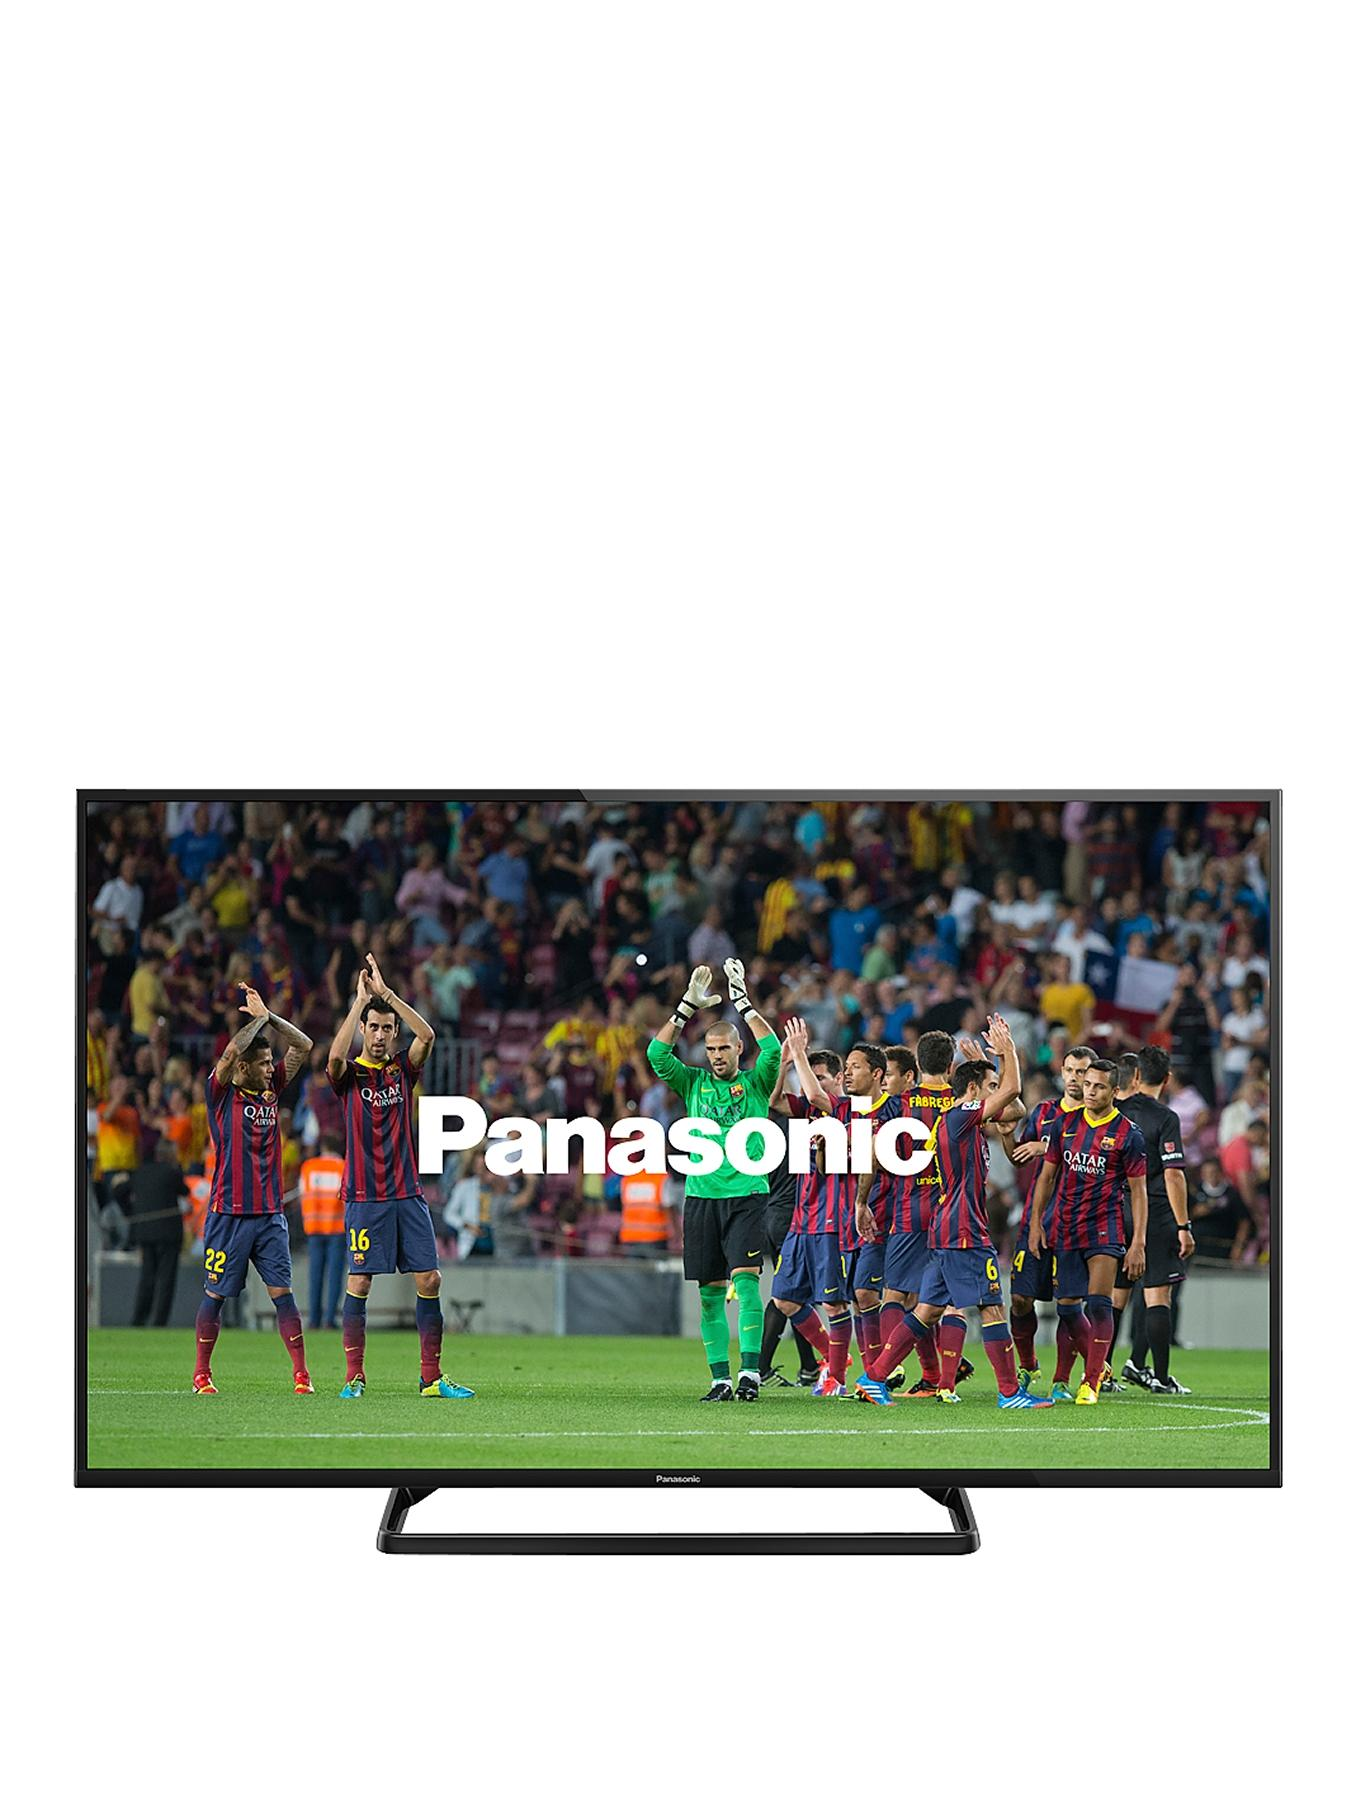 Panasonic TX-42A400B 42-inch Widescreen 1080p Full HD Slim LED TV with Freeview